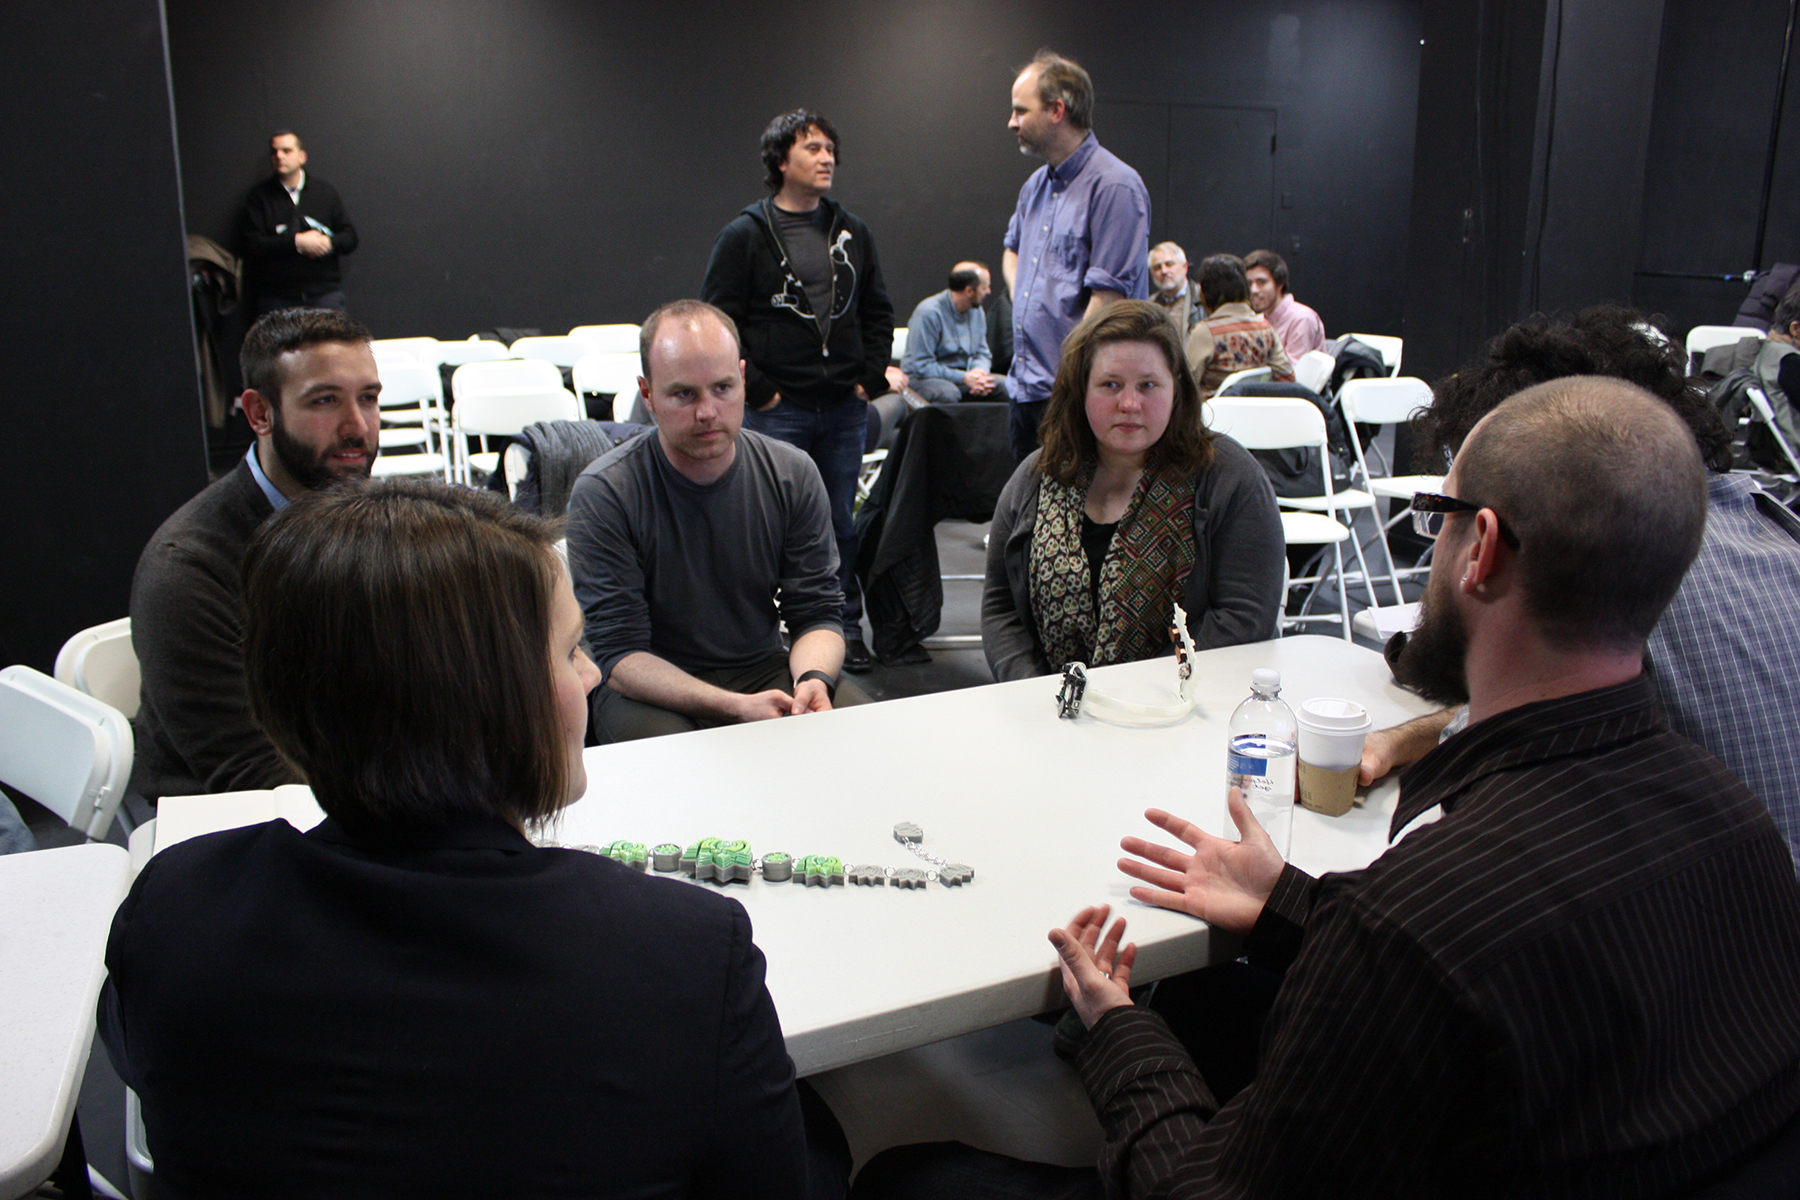 3D Printing Roundtable Discussion: Discussion breakout group led by Jason Ferguson, Taylor Hokanson, and Kristin Stransky, 2014. ©Rachel Clarke. (Used with permission.)